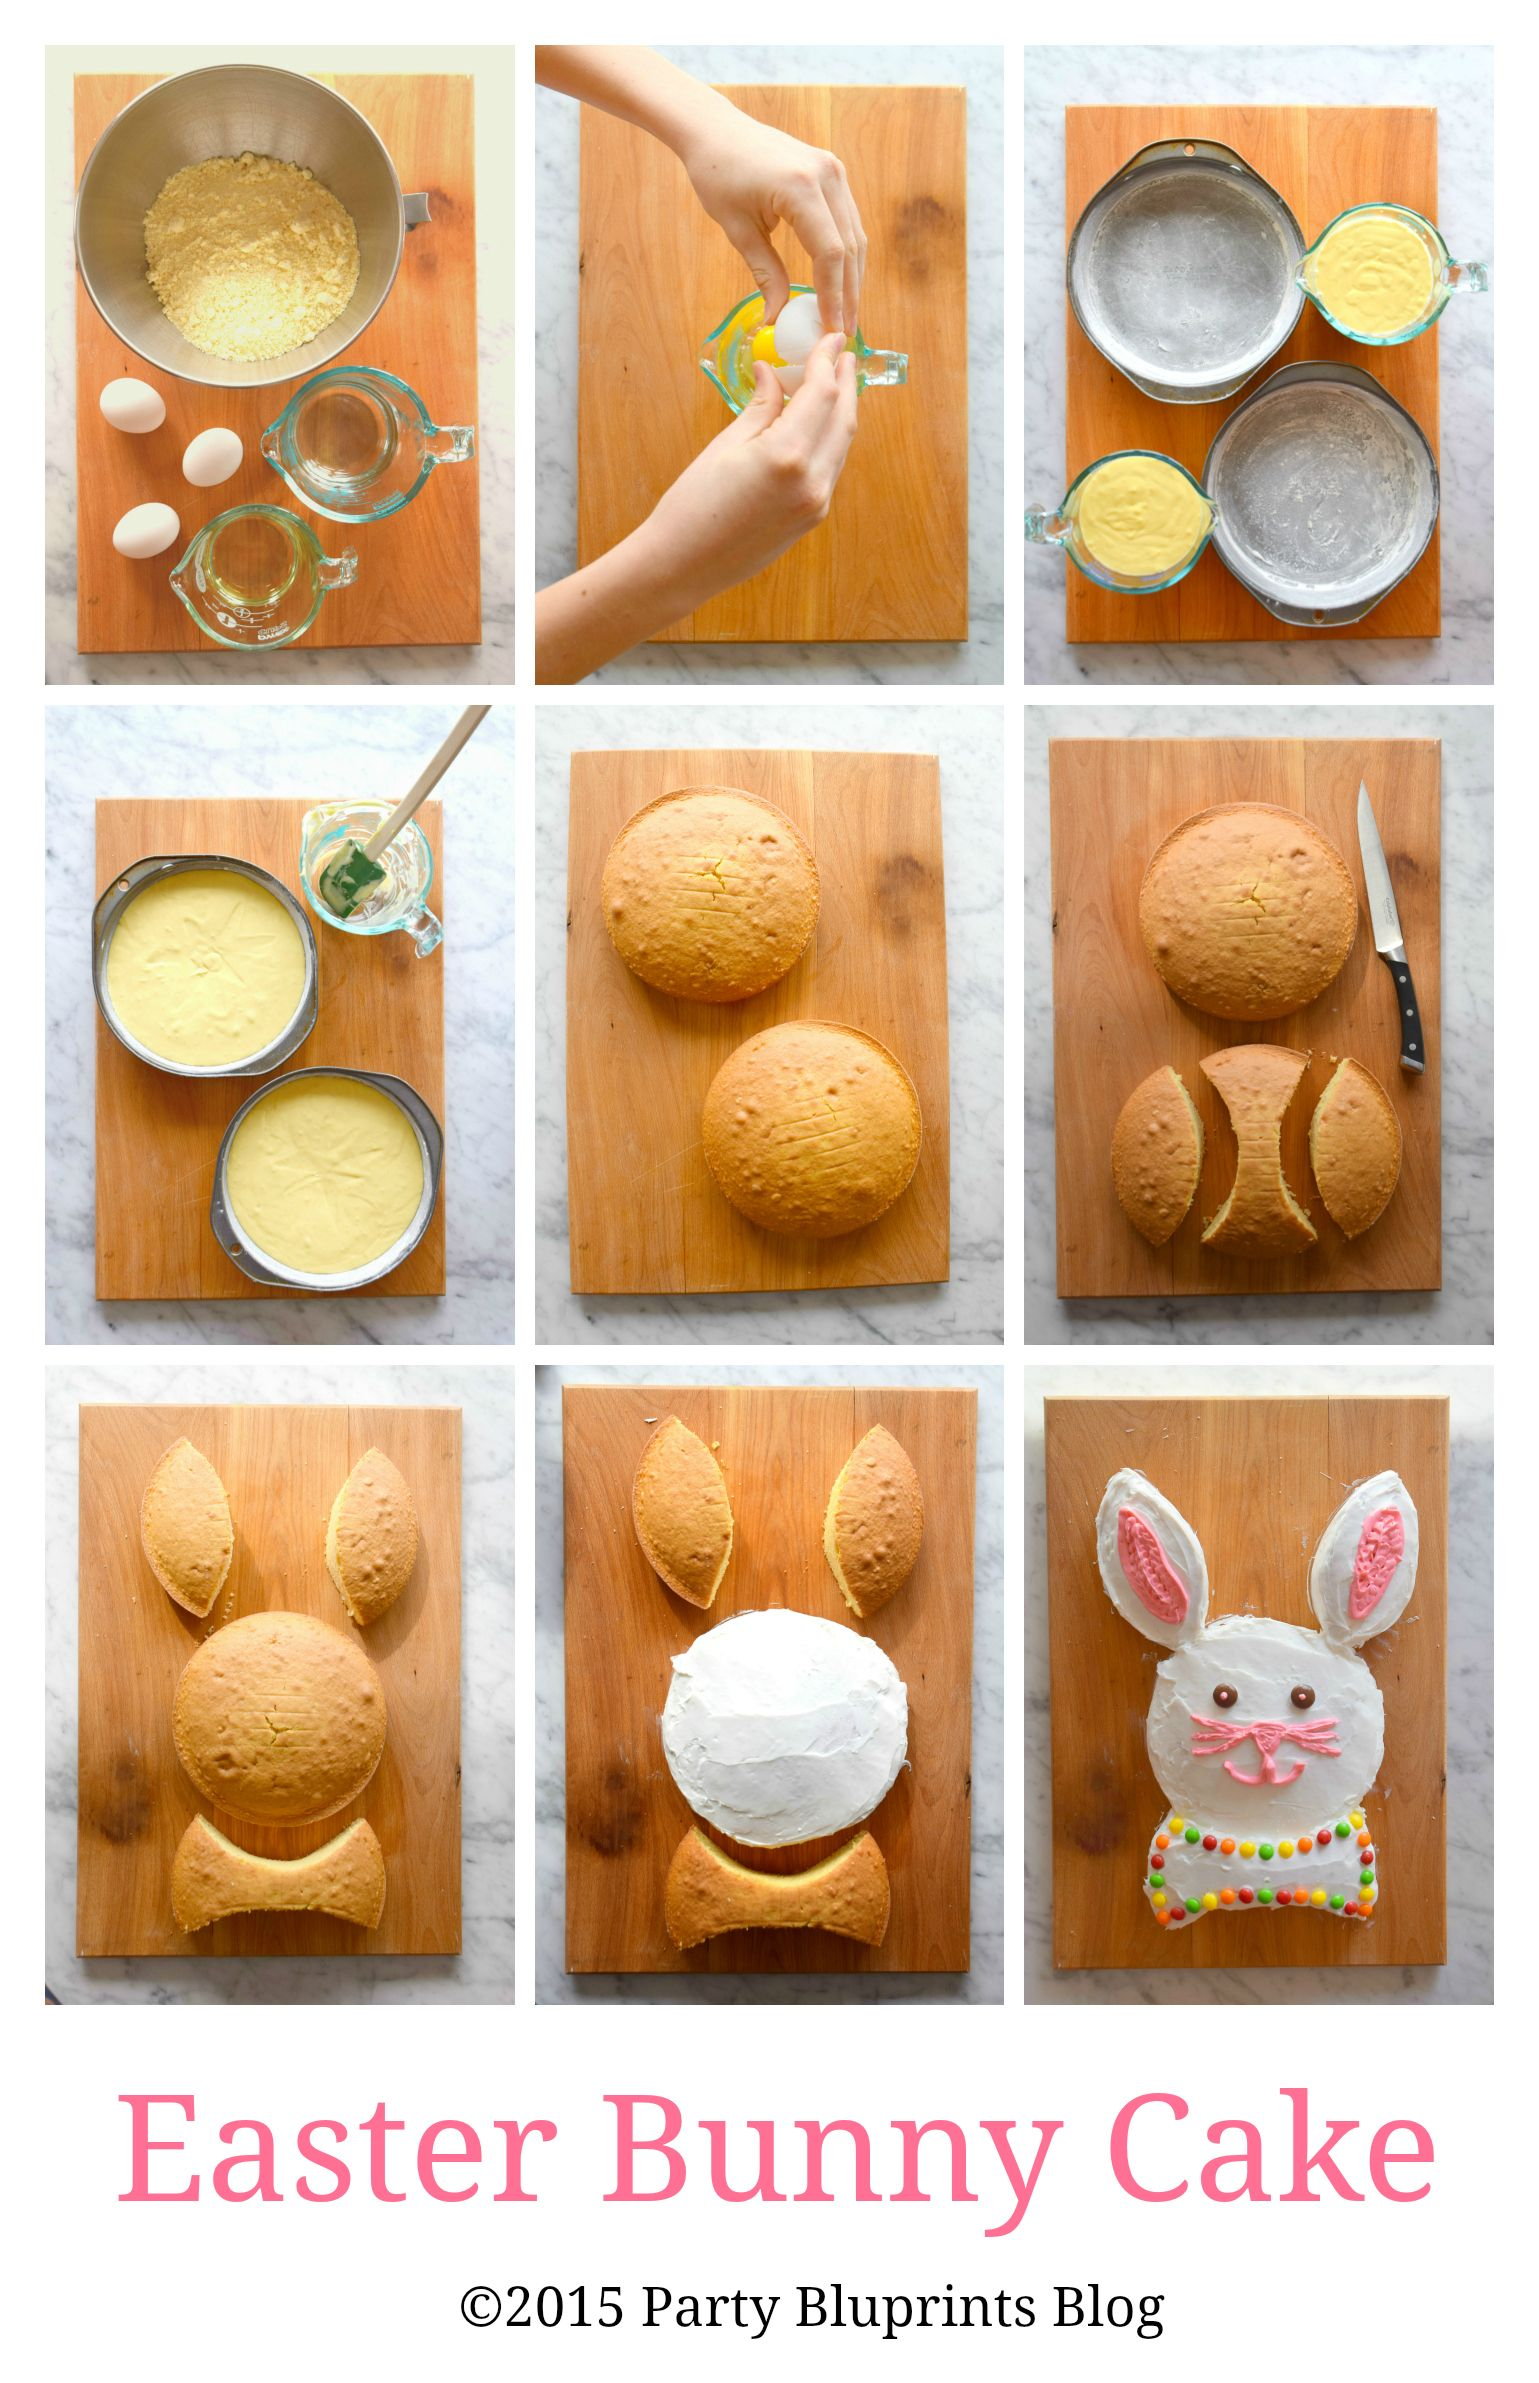 Build the Perfect Easter Menu With These Festive Recipes #celebrationcakes